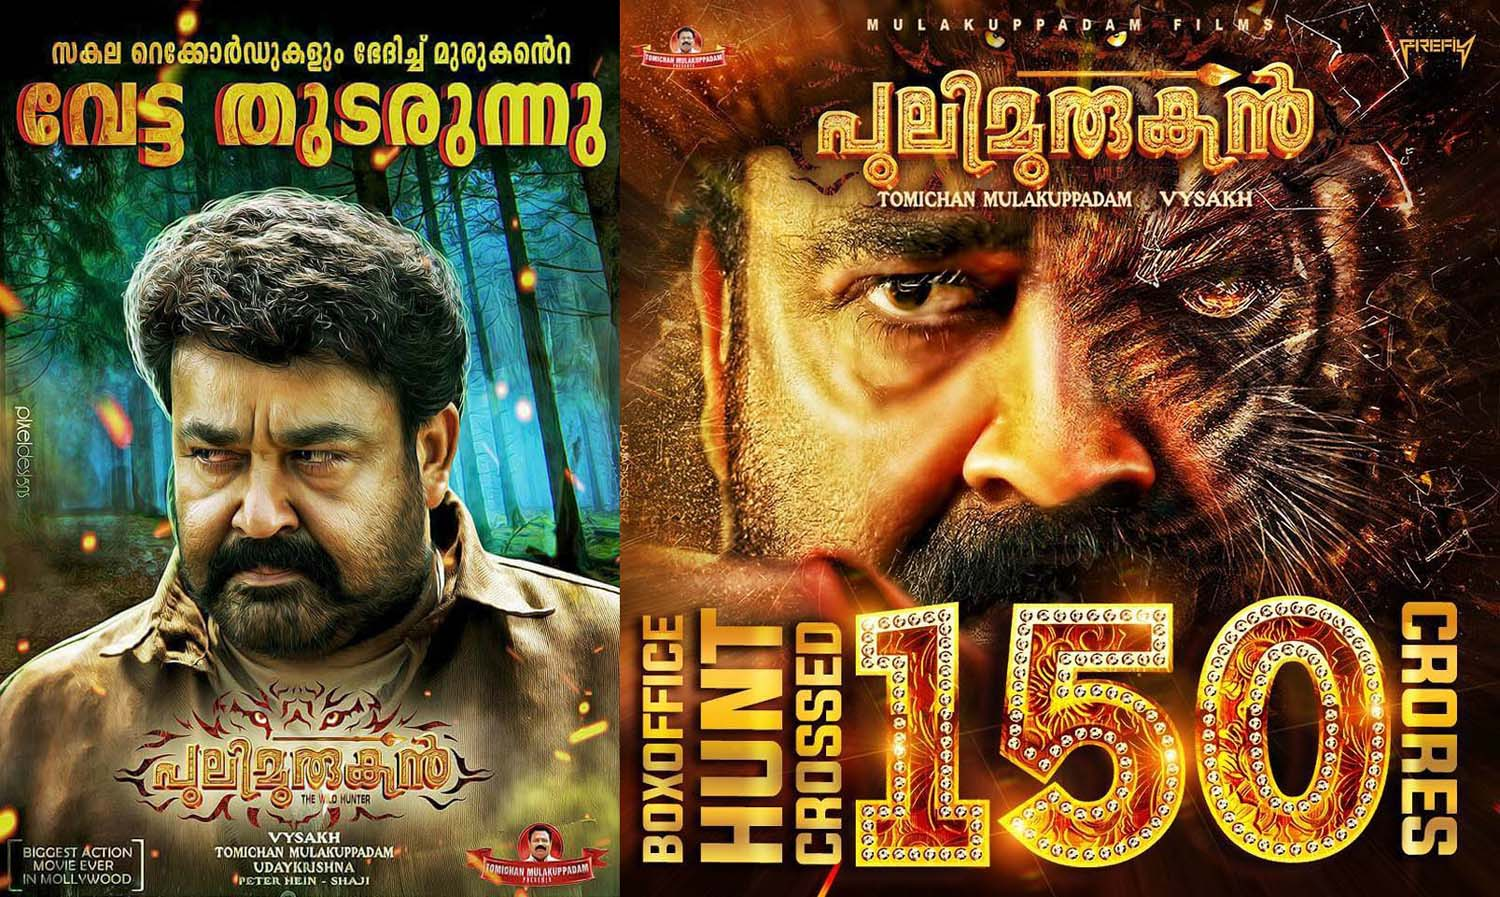 best Malayalam movies of 2016, pulimurugan, aanandam, guppy, maheshinte prathikaram, best malayalam movies, best movie in mollywood, super hit malayalam movies 2016